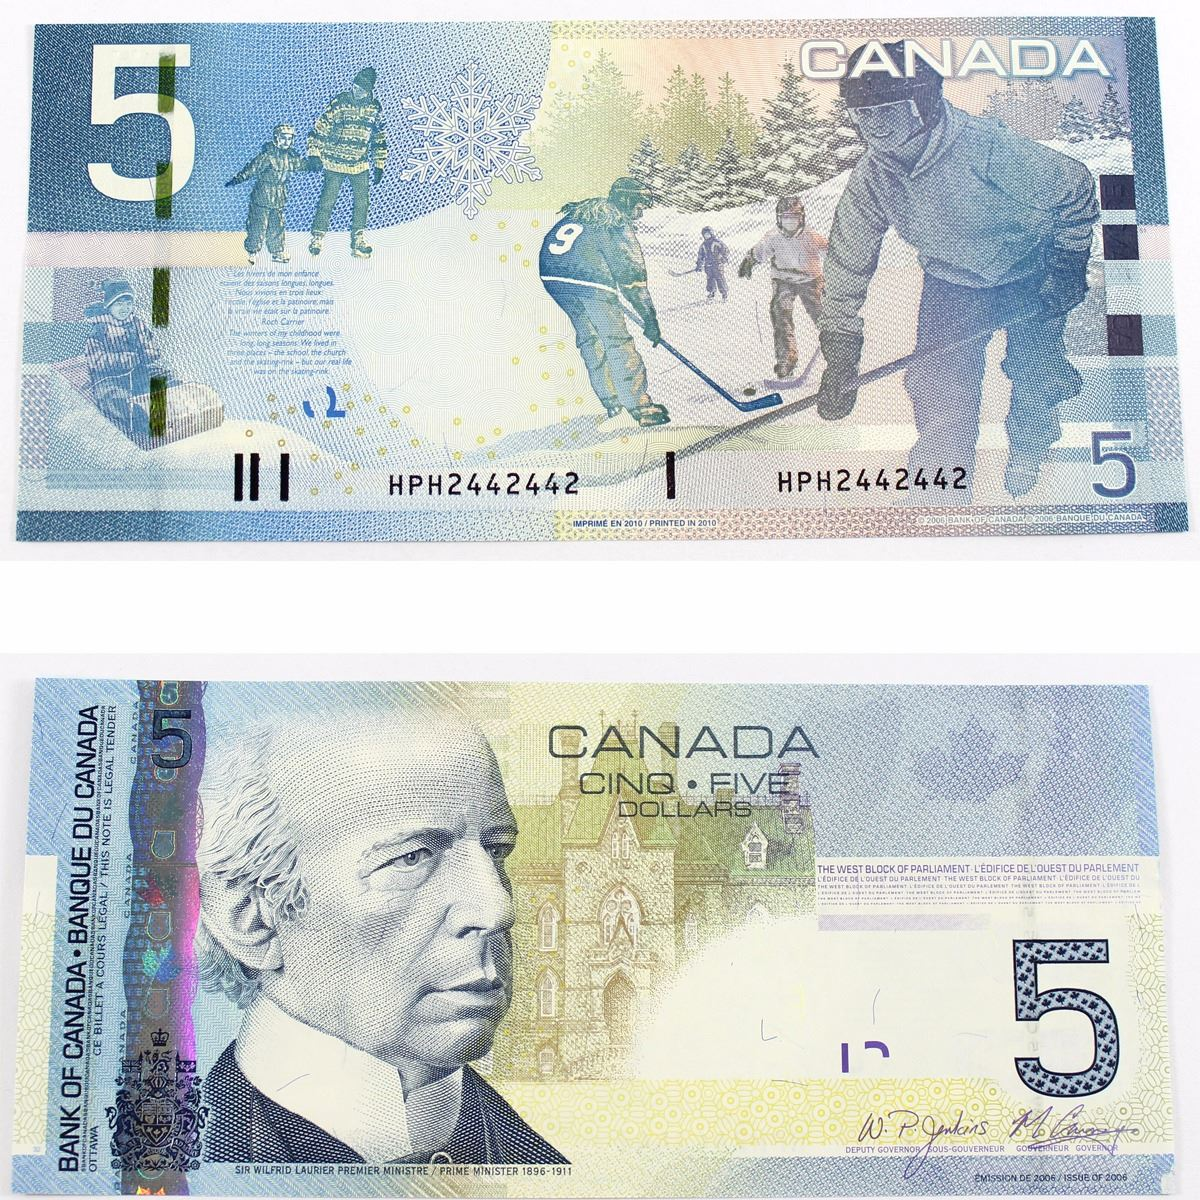 2006 $5.00 Canada Note with 2 digit RADAR Serial Number HPH2442442